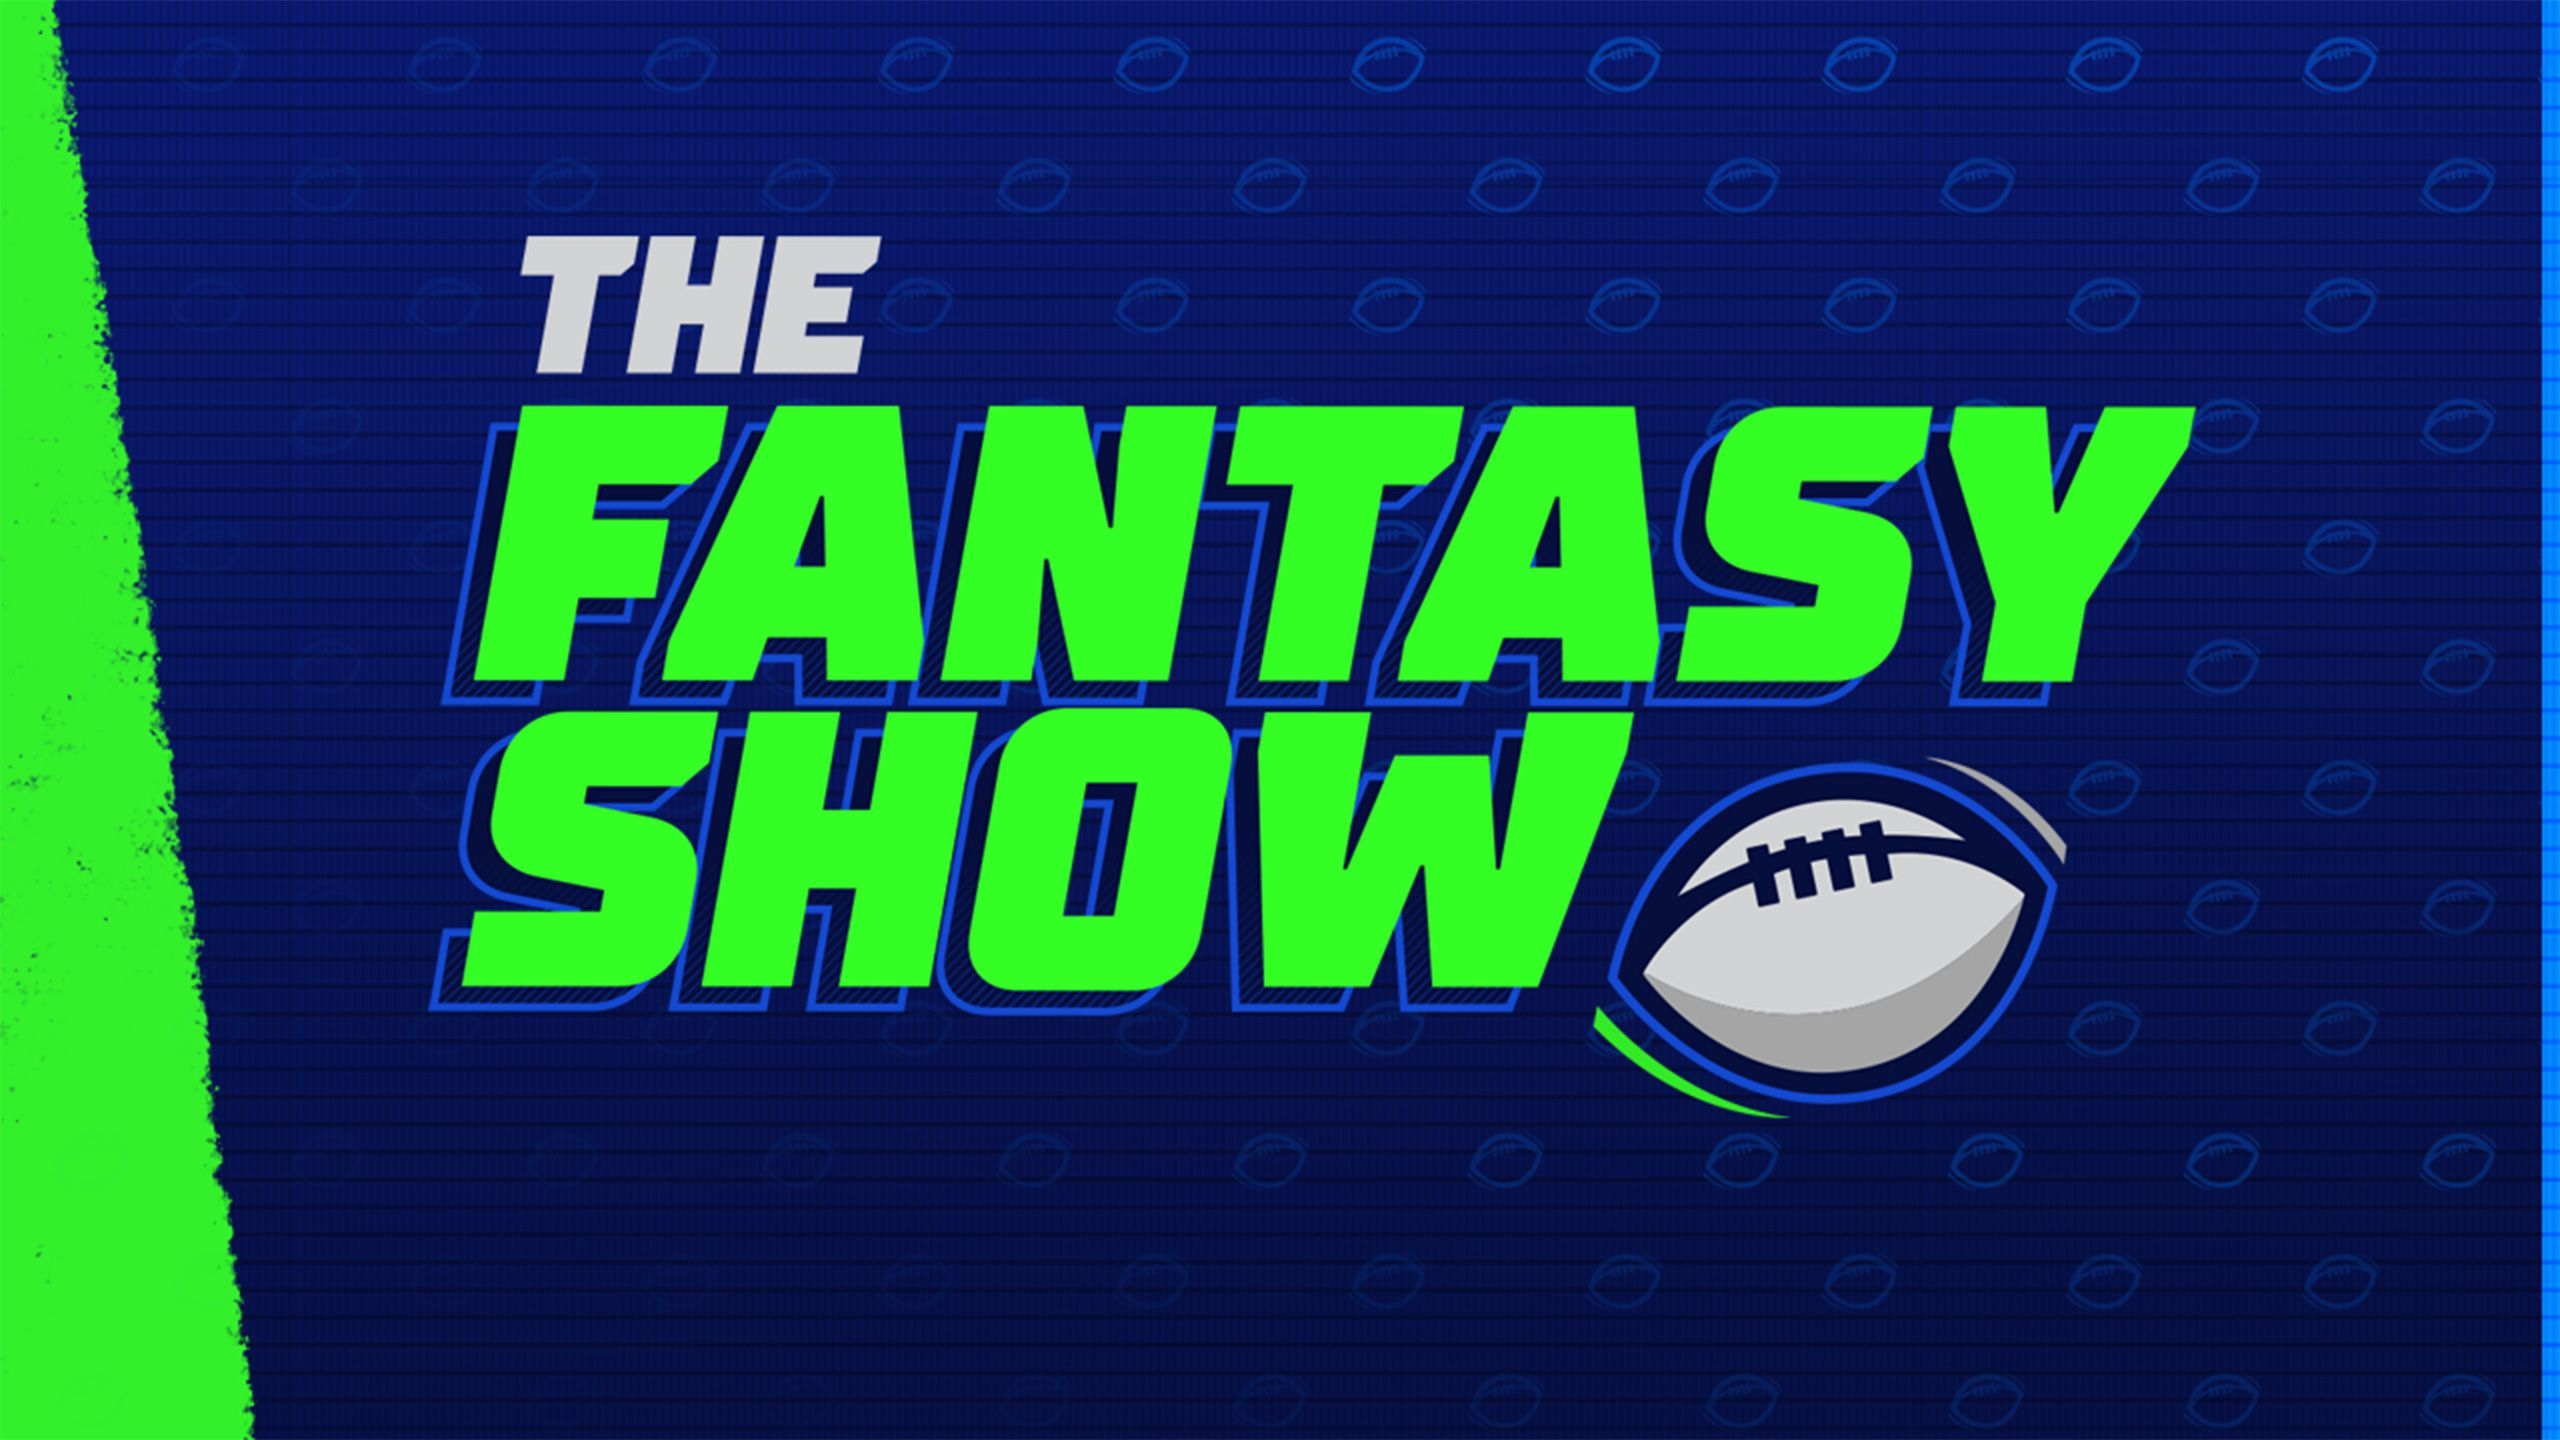 Thu, 10/19 - The Fantasy Show presented by E*Trade